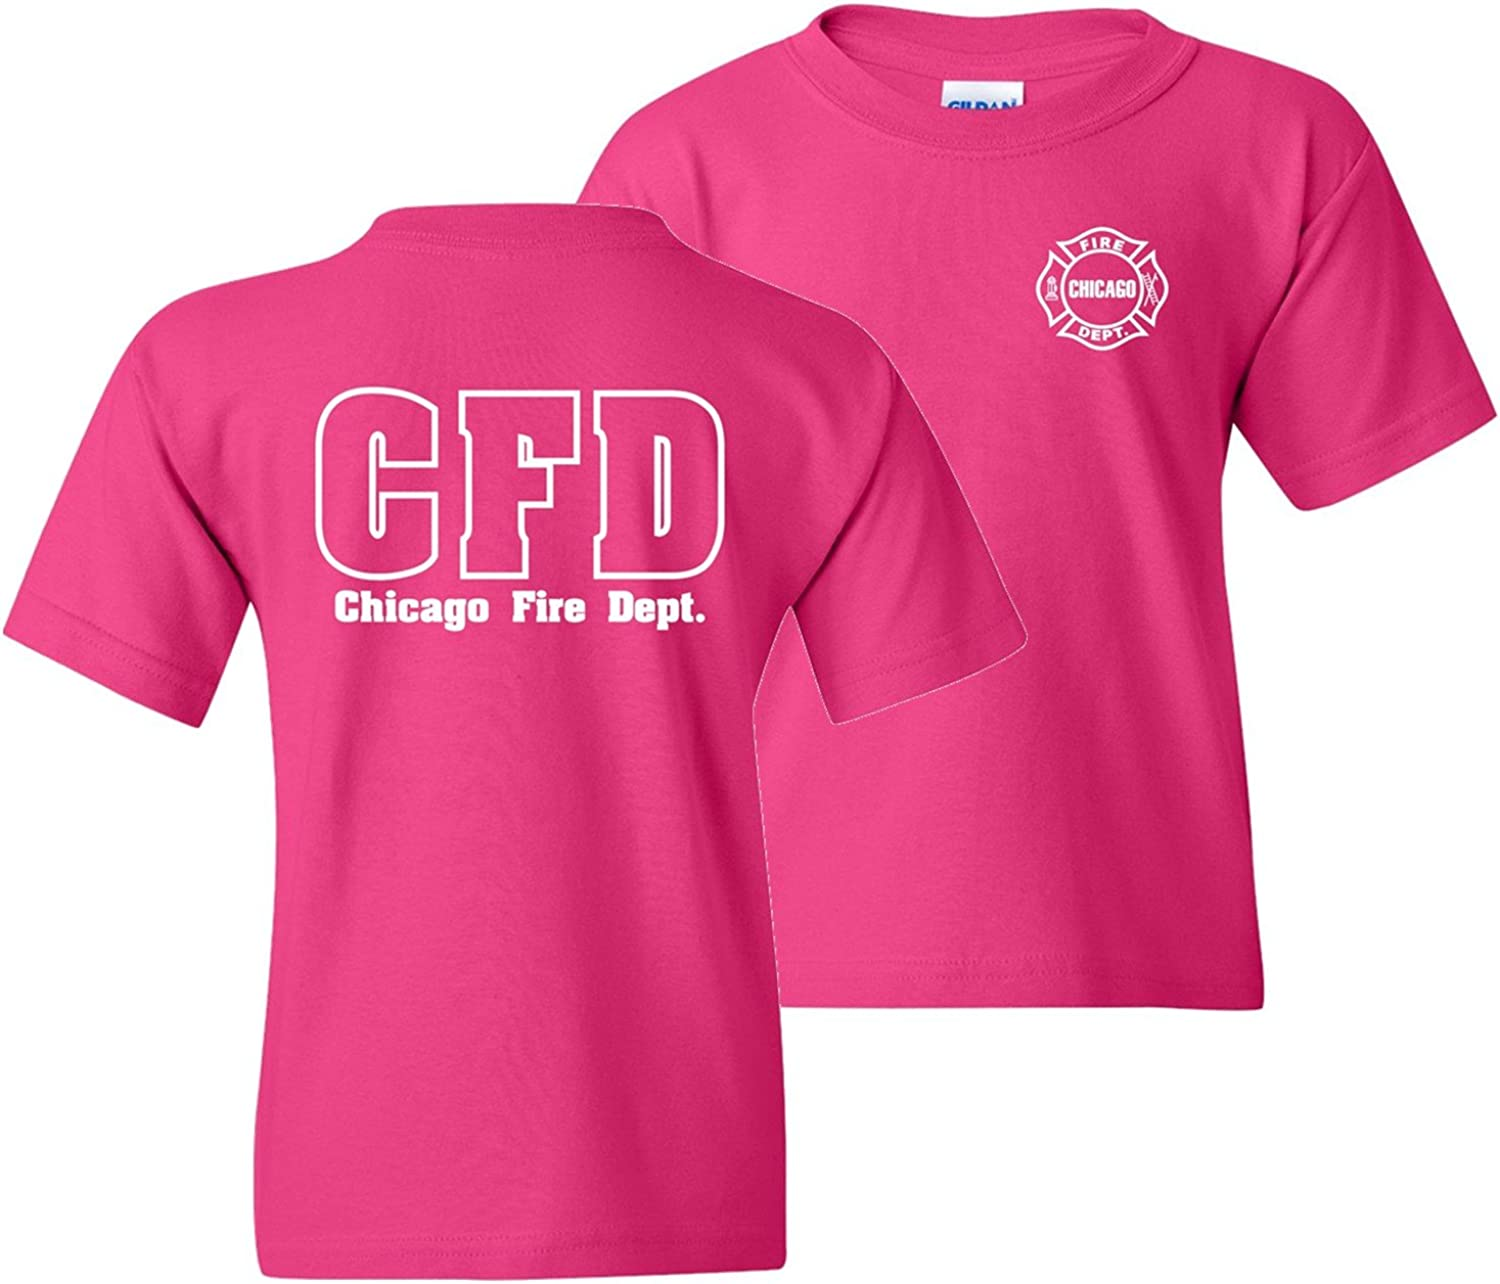 Chicago Fire Department Maltese Cross Youth 2-Sided T-Shirt